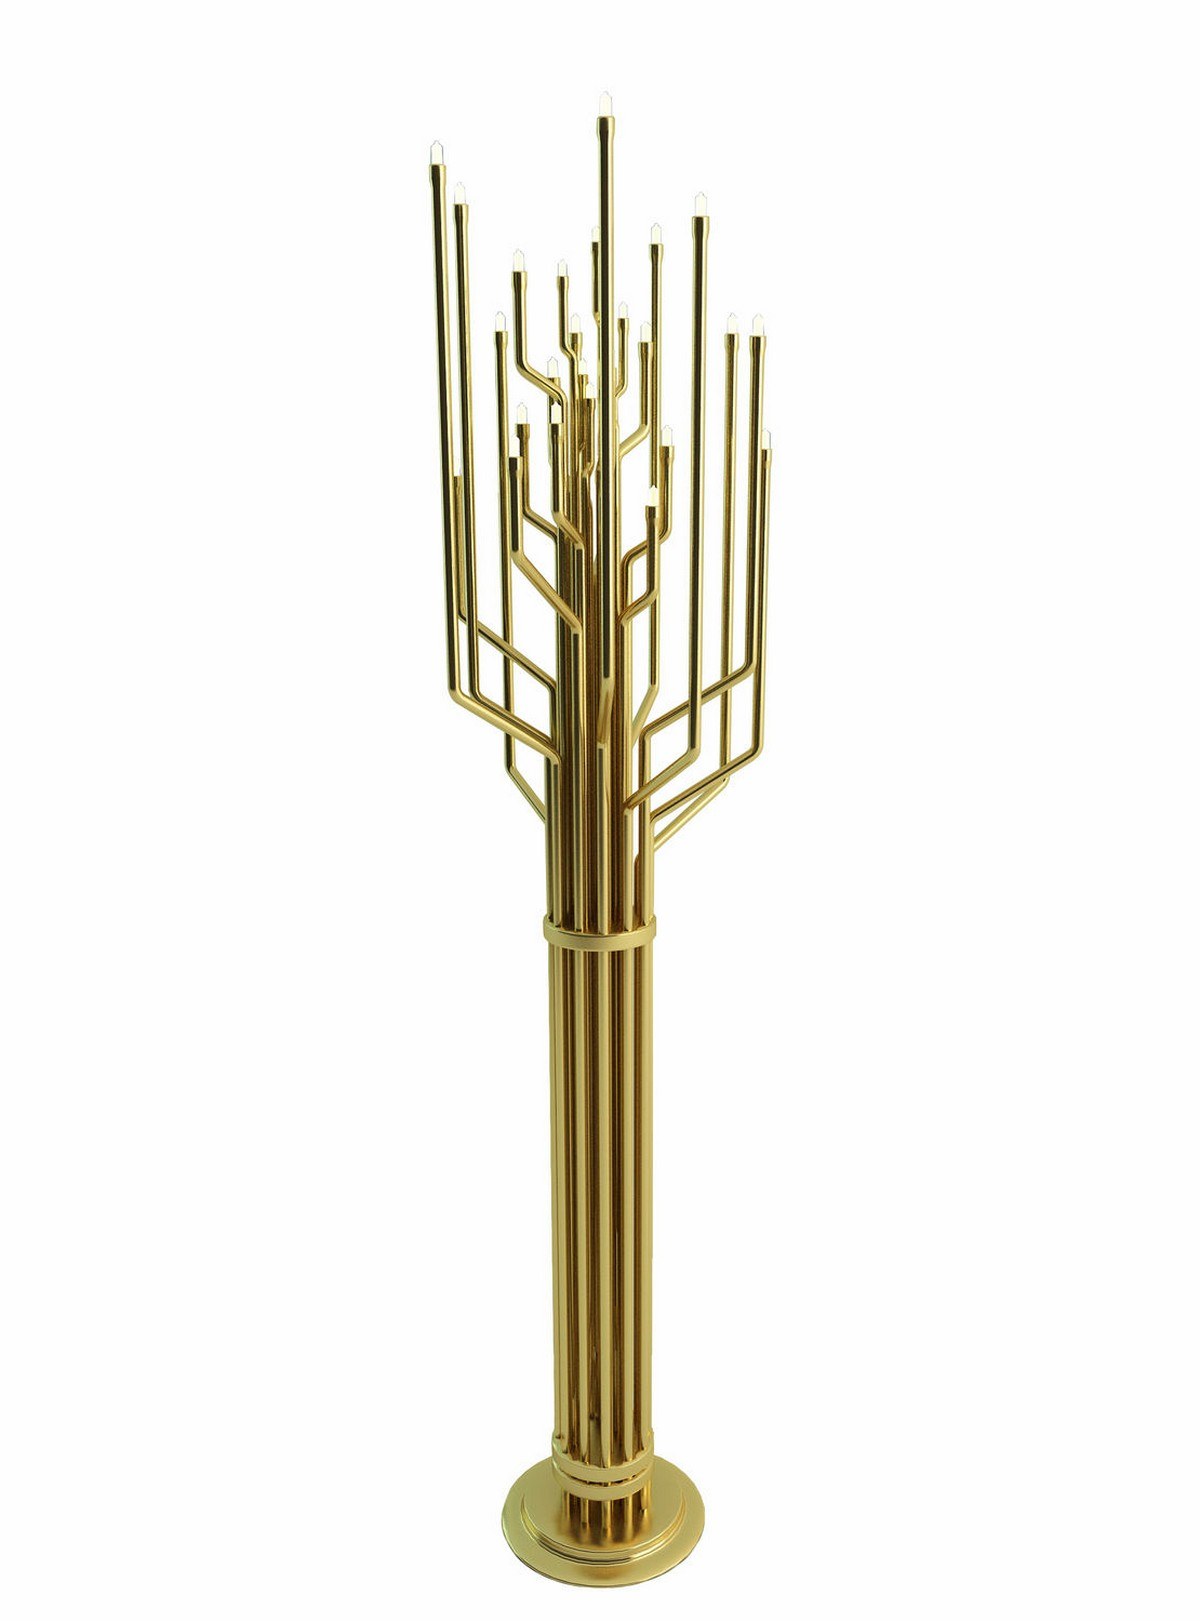 Exclusive Lighting Designs You Will Love (Part III) exclusive lighting designs Exclusive Lighting Designs You Will Love (Part III) janis table lamp2